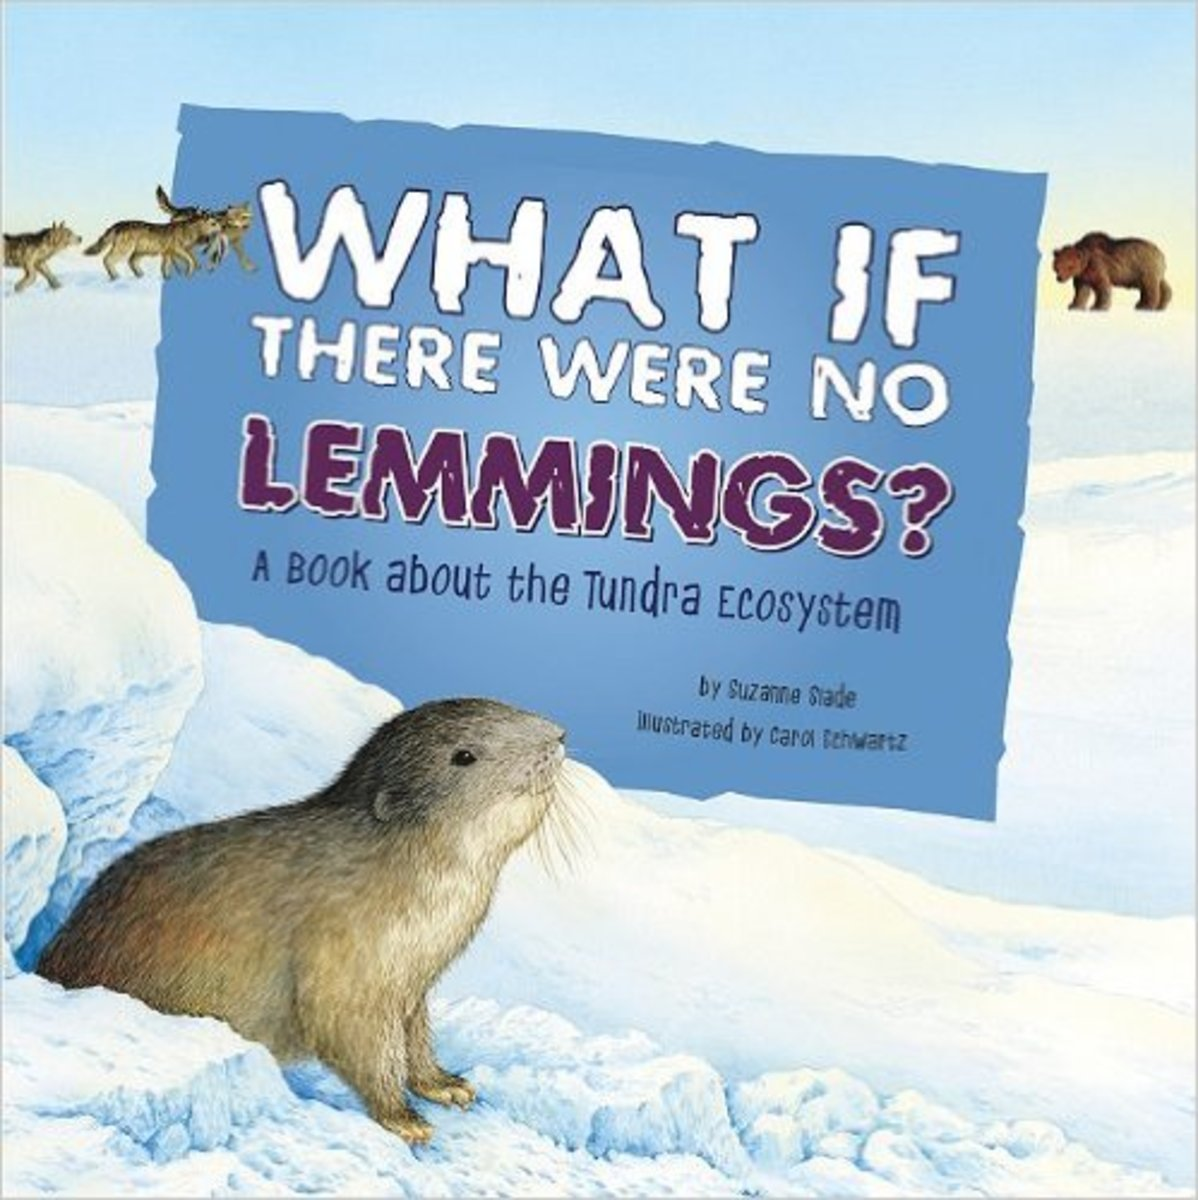 What If There Were No Lemmings?: A Book About the Tundra Ecosystem (Food Chain Reactions) by Suzanne Slade